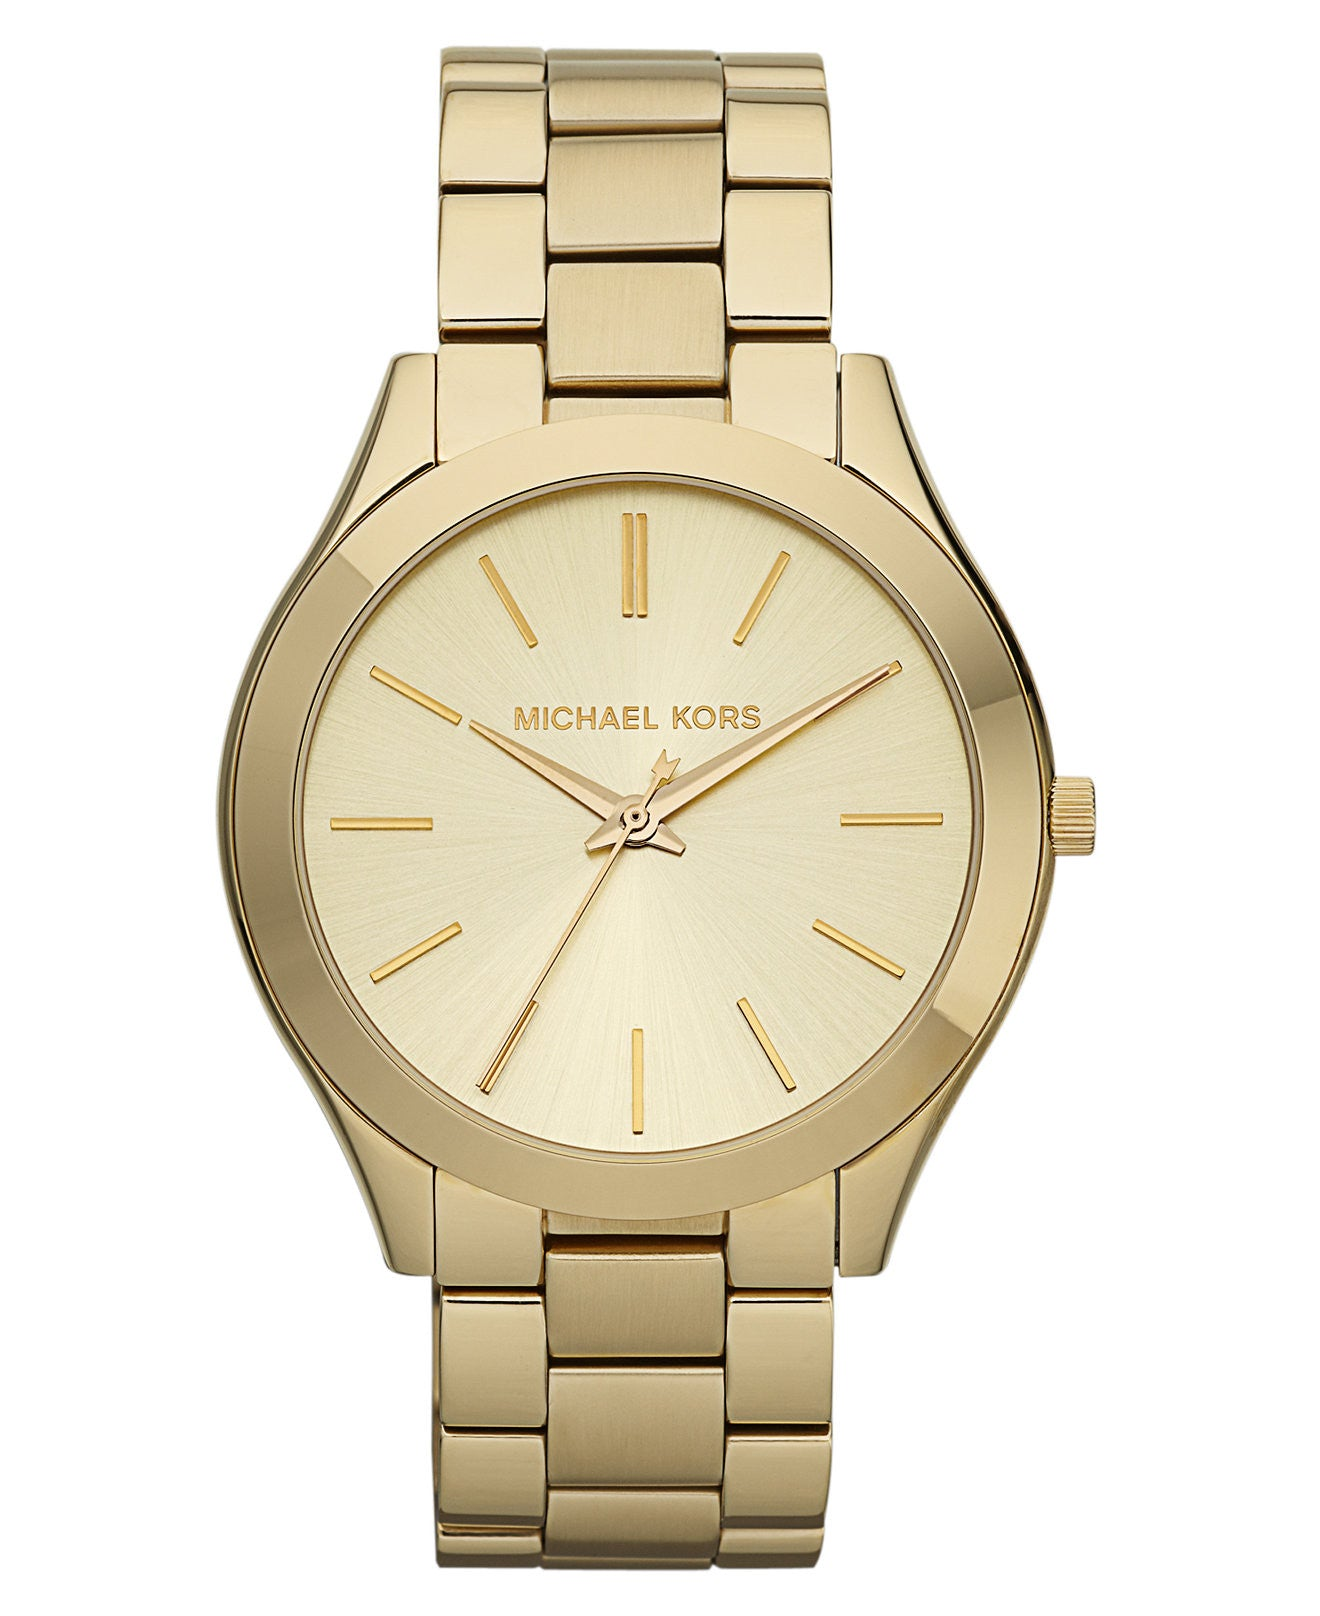 Michael Kors Watch MK3179